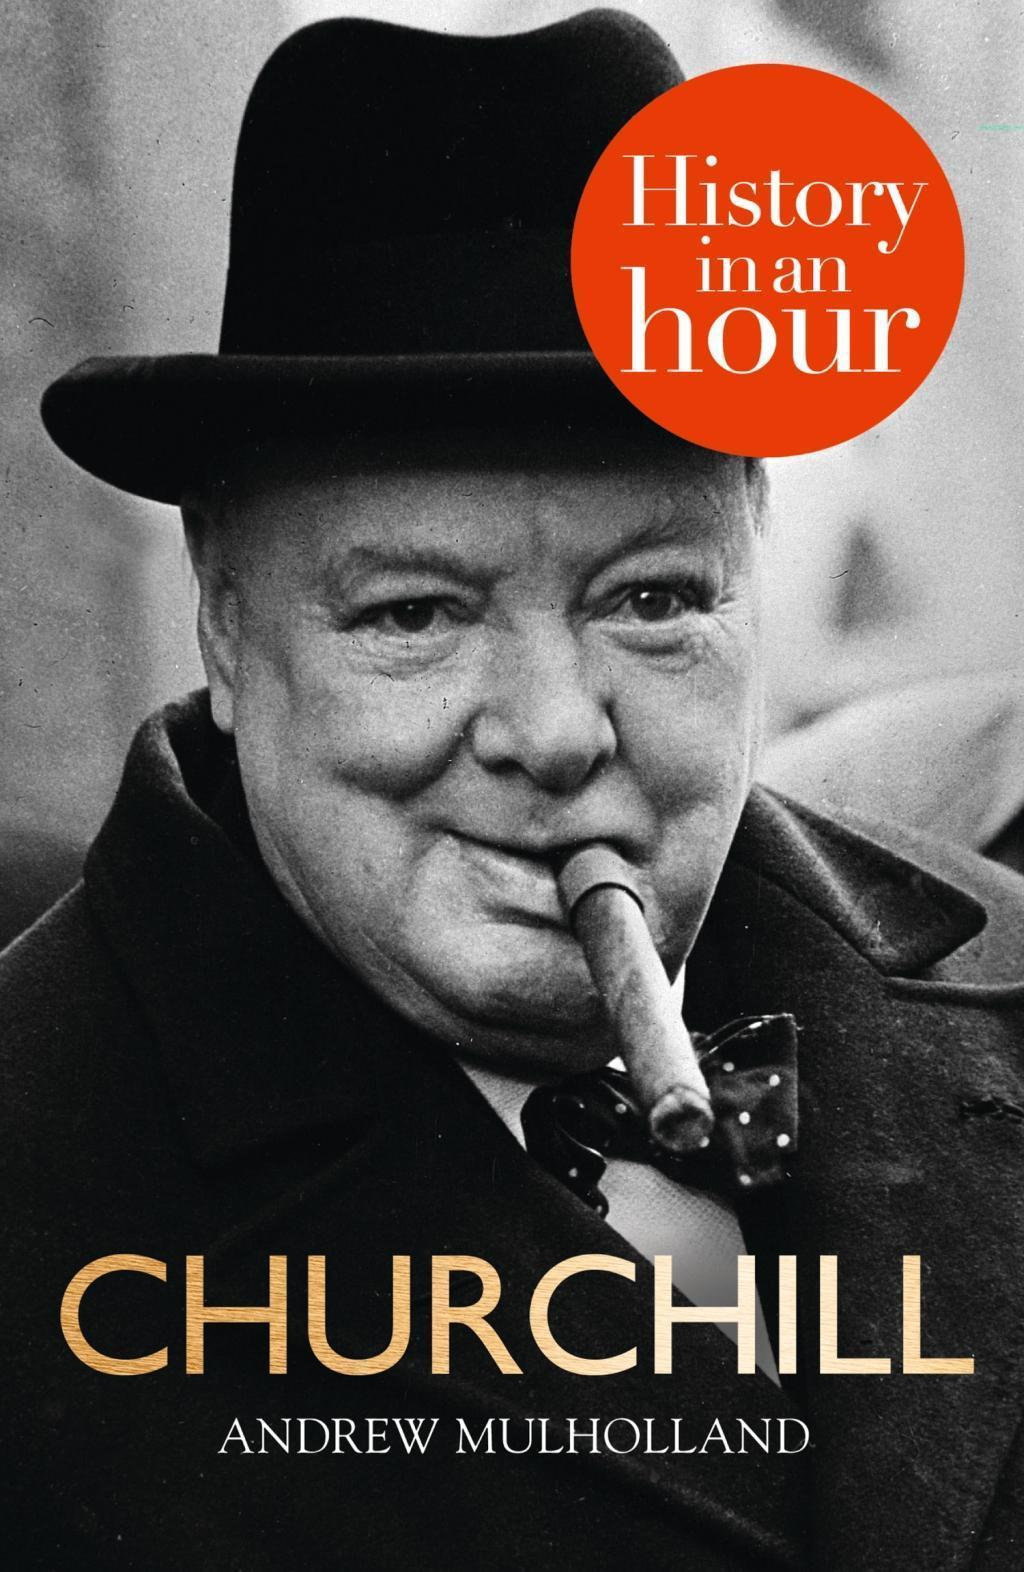 Churchill: History in an Hour